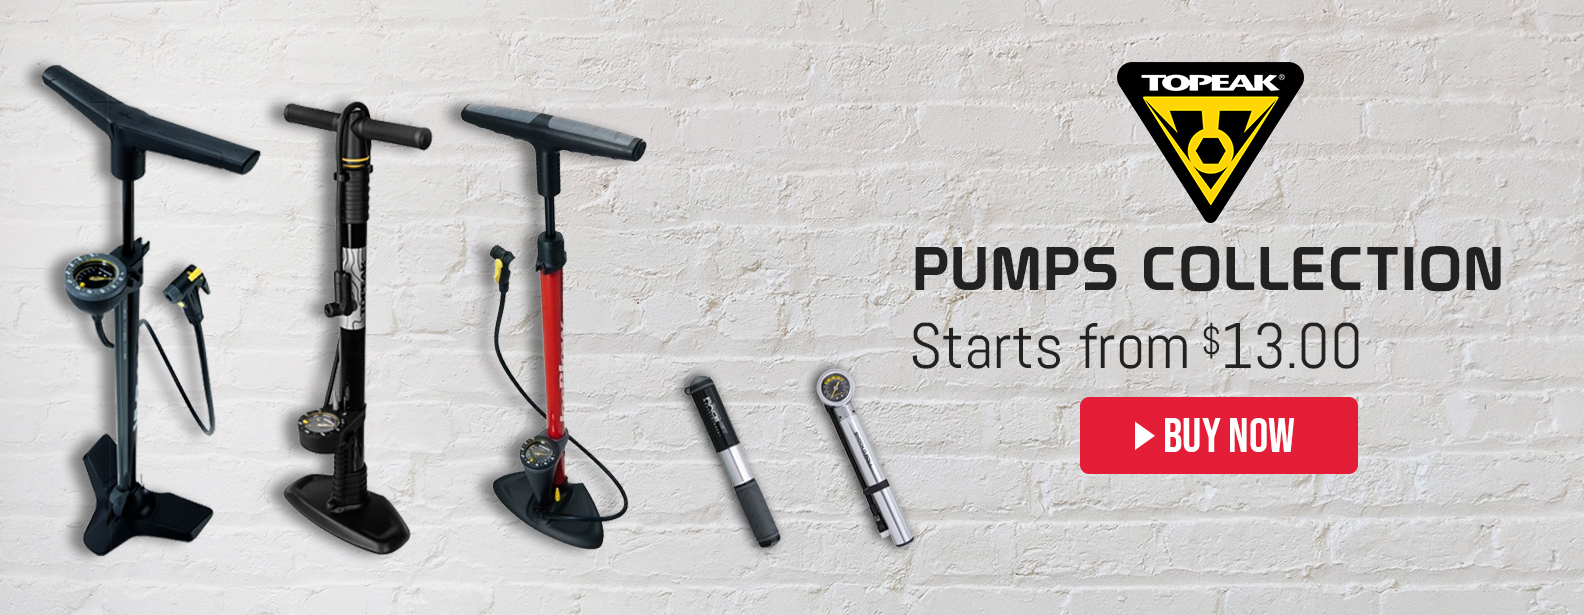 Topeak Pumps Collection